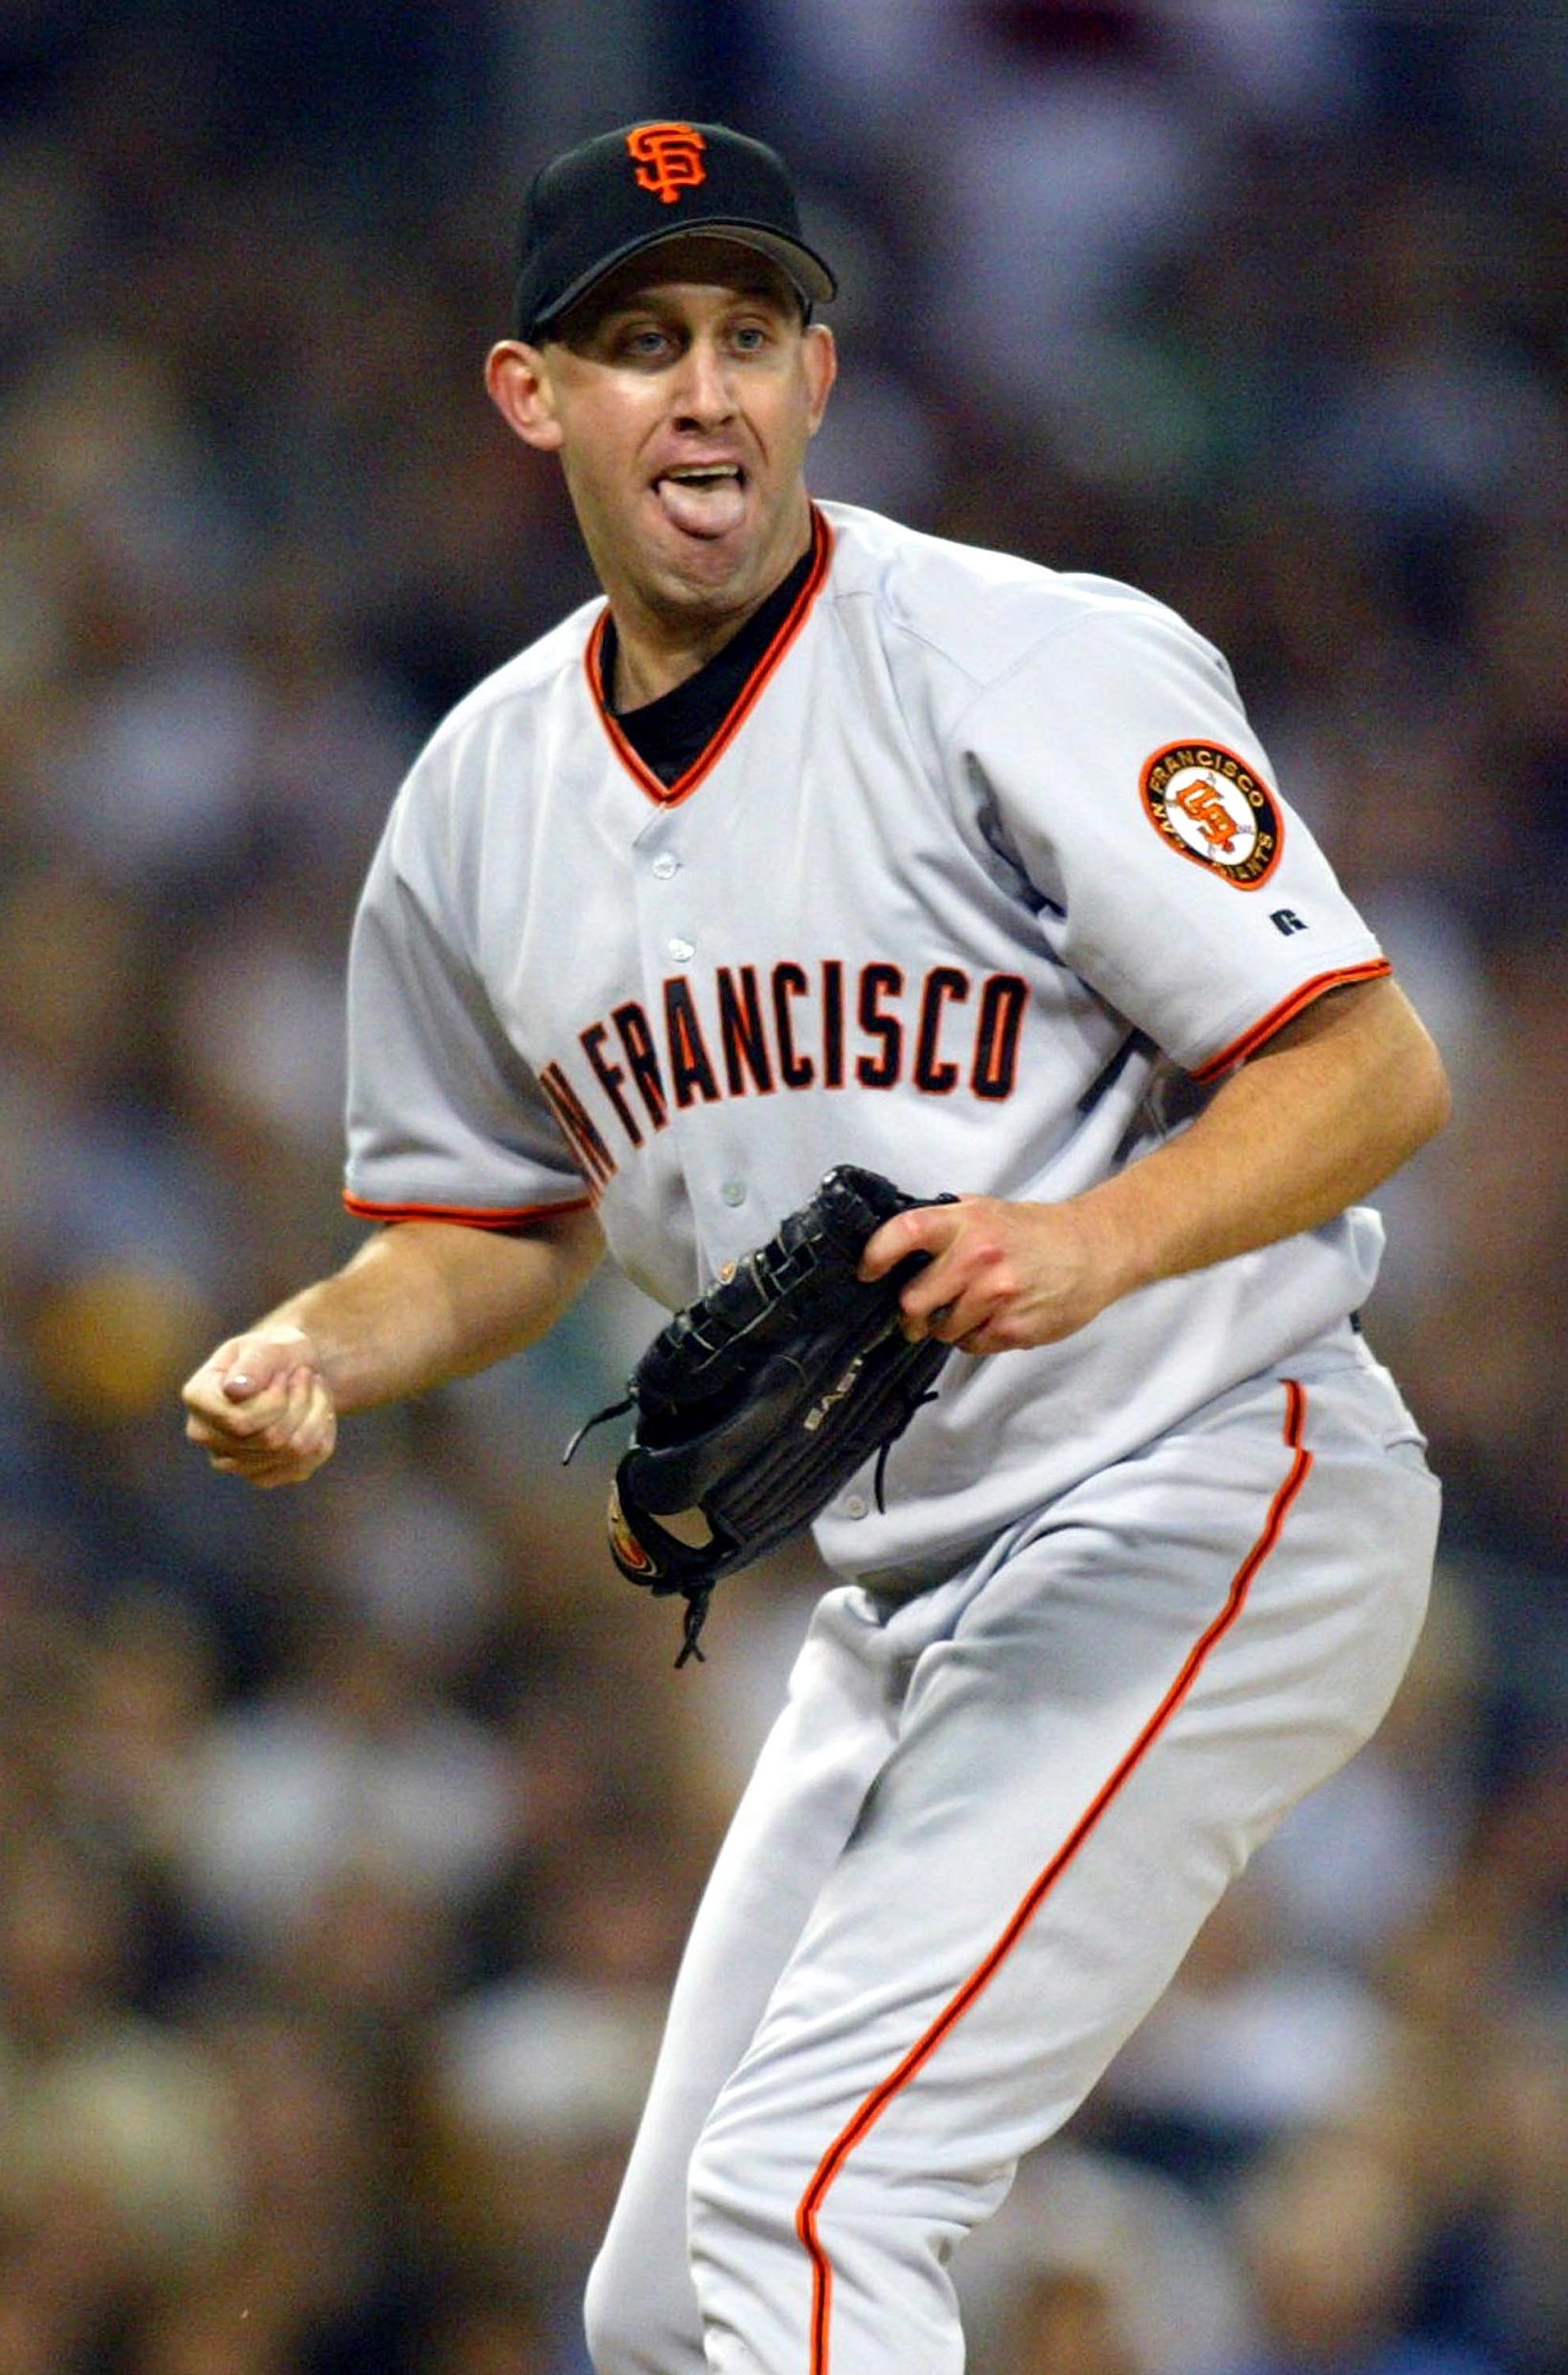 SAN DIEGO, CA - APRIL 10:   Pitcher Kirk Reuter #46 of the San Francisco Giants reacts after getting hit by a ball during their game against the San Diego Padres at Petco Park on April 10, 2004 in San Diego, California.  (Photo by Donald Miralle/Getty Ima